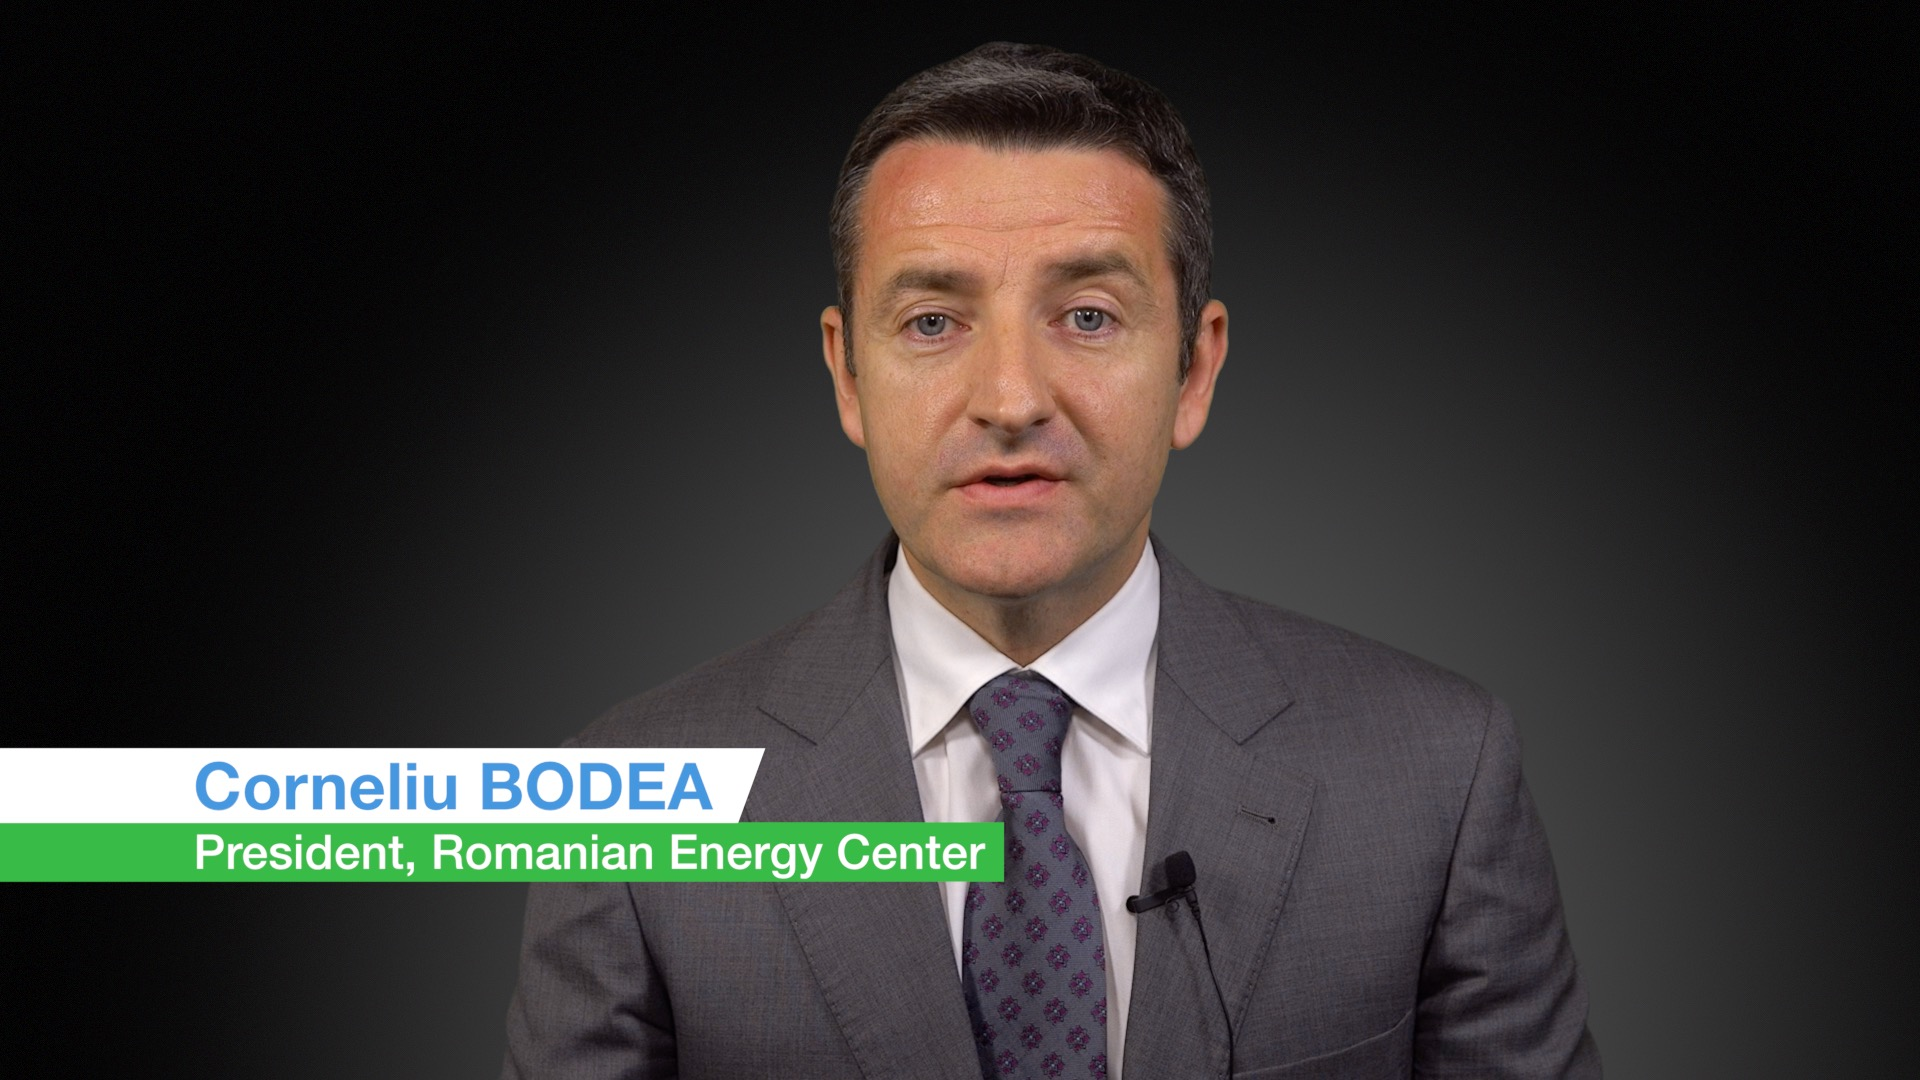 Consolidating the European dimension of the Romanian energy sector